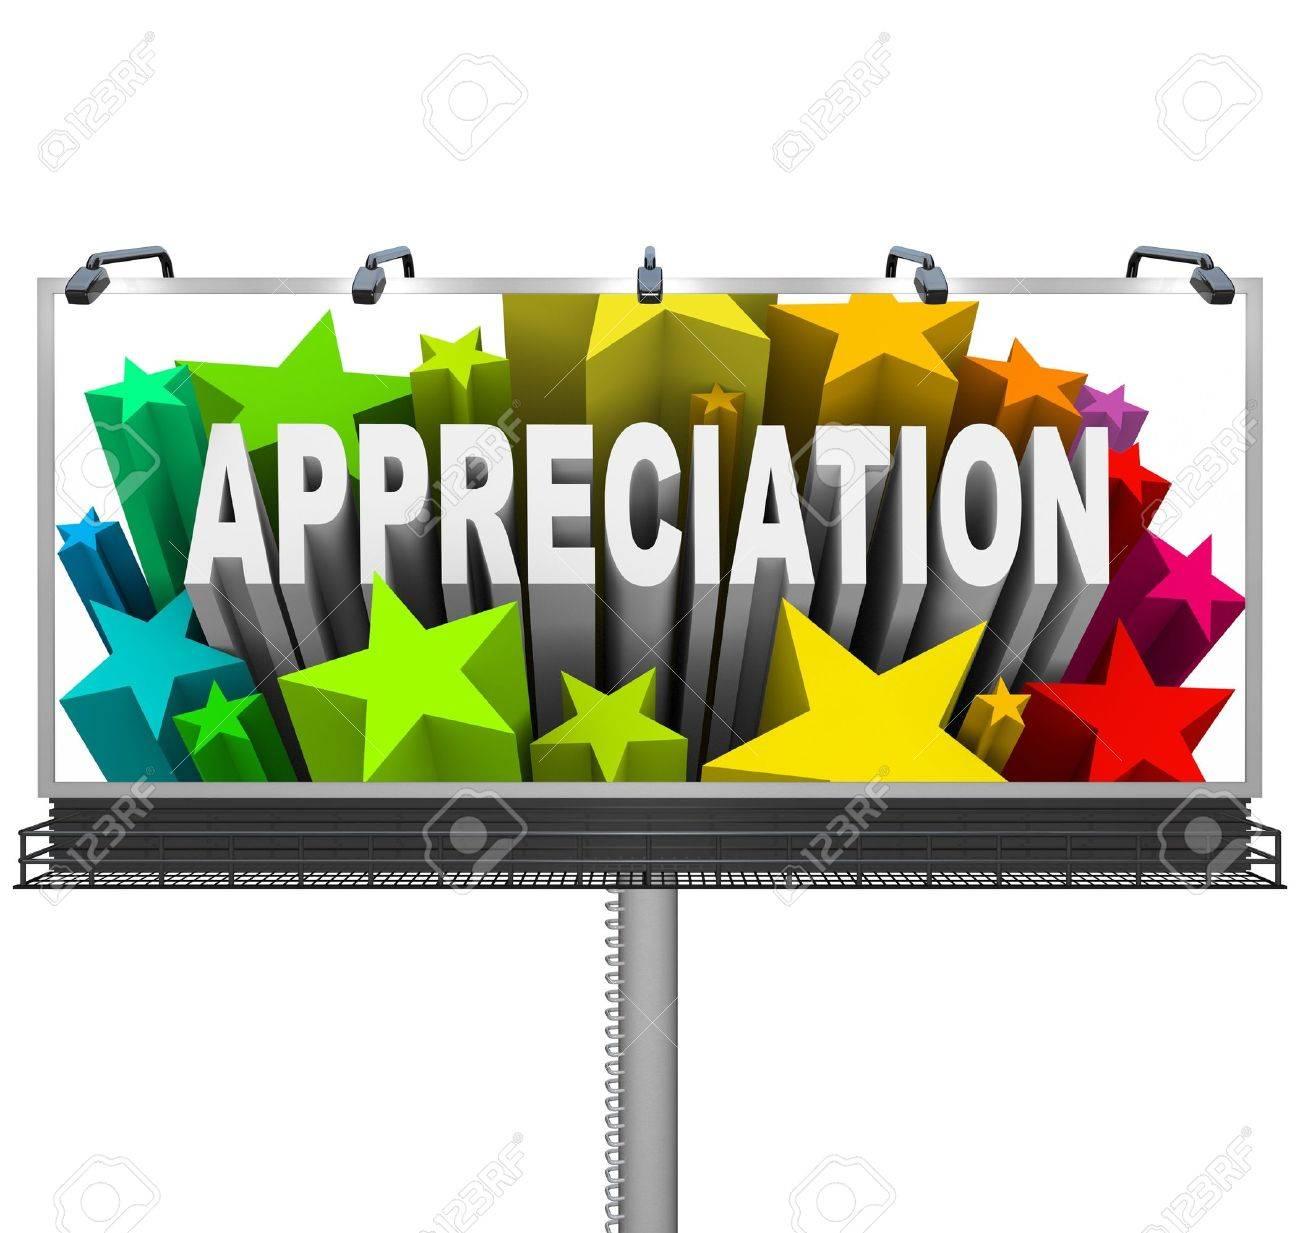 Image result for images of appreciation